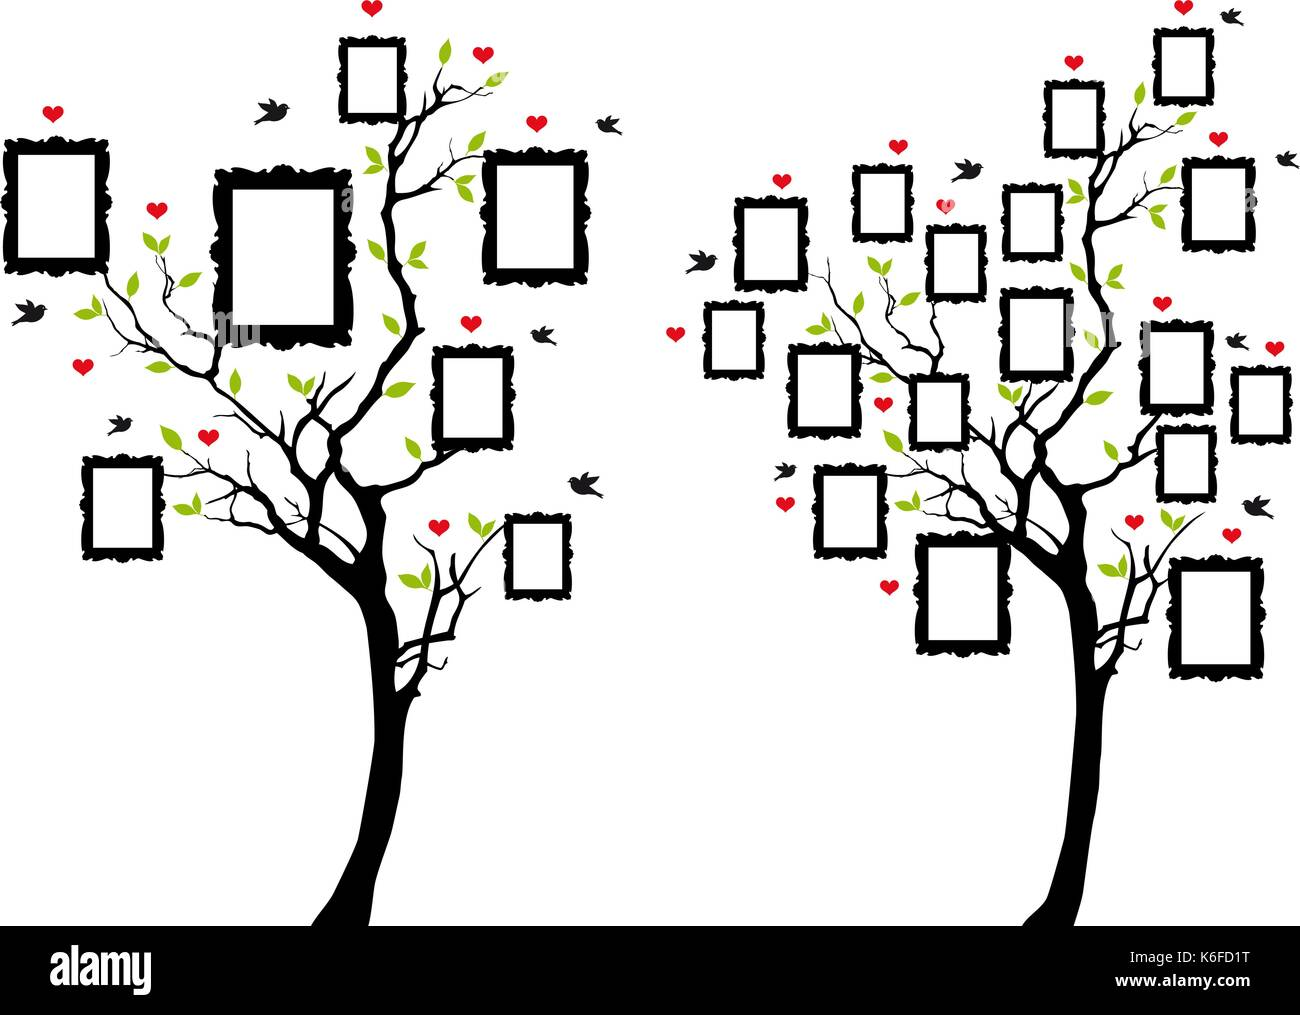 family tree with blank picture frames  vector illustration stock vector image  u0026 art